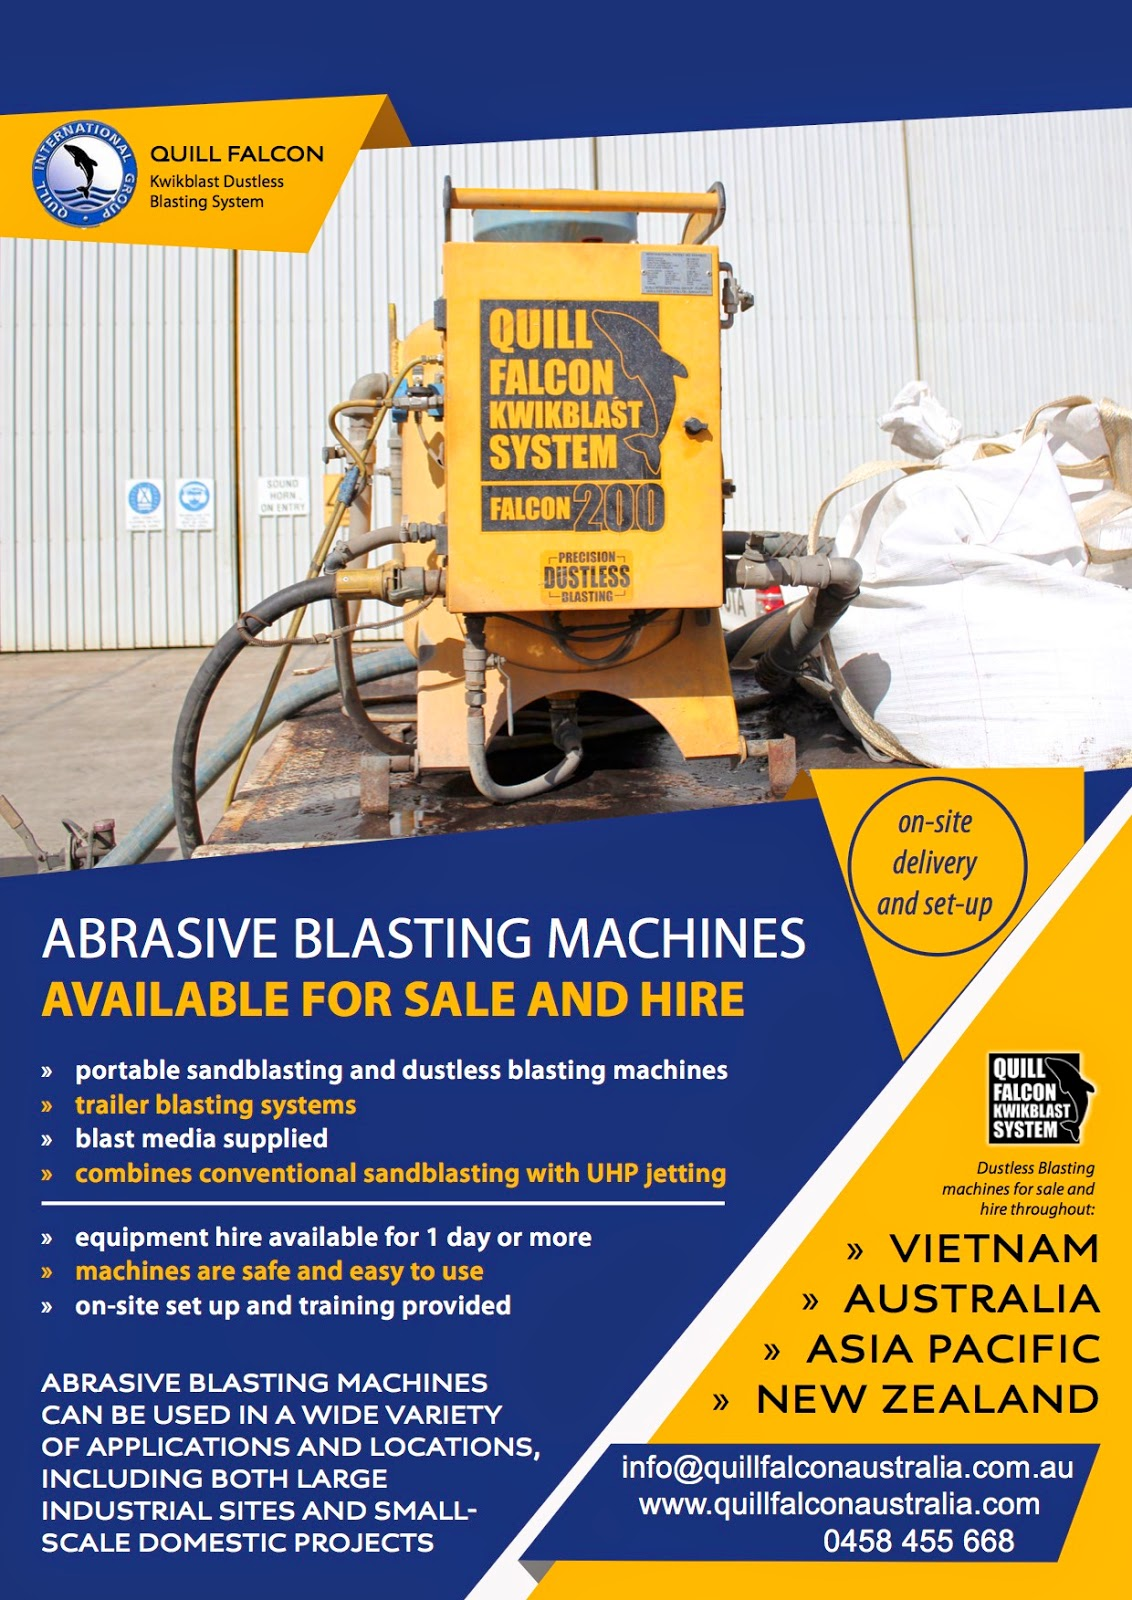 Sandblasting equipment for sale and hire